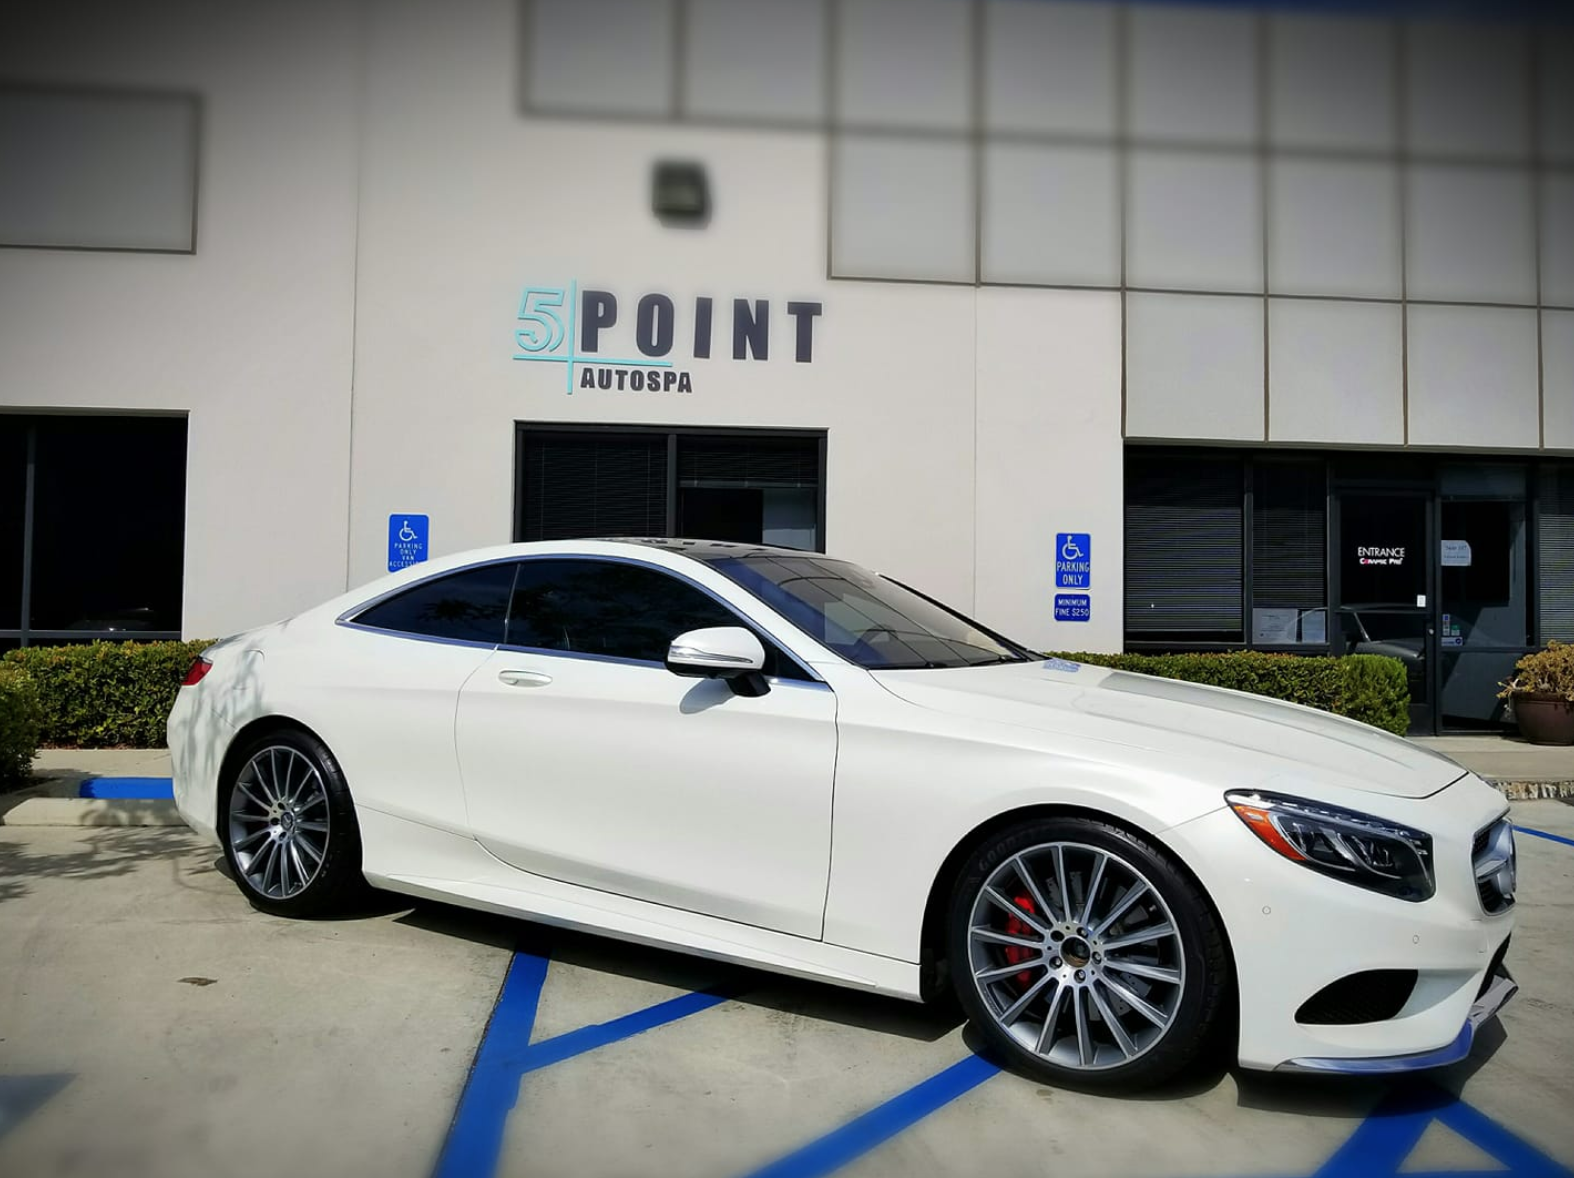 Window tinting provided by 5 Point Auto Spa on white Mercedes.